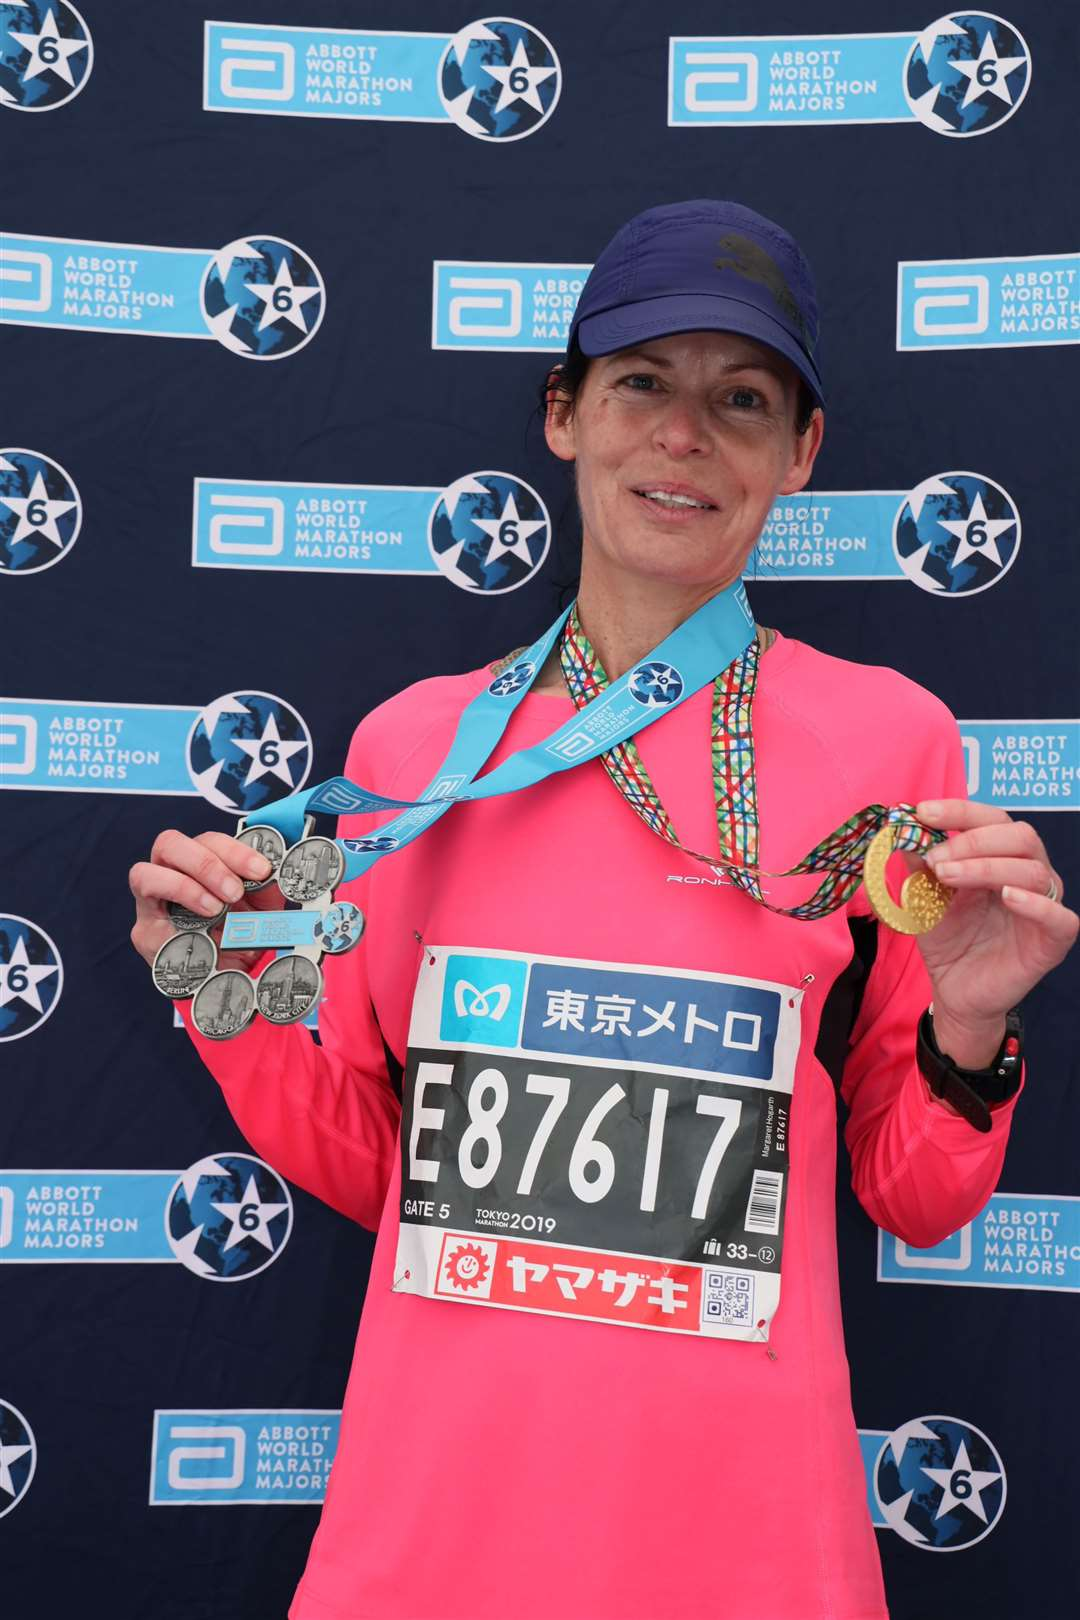 Margaret was given her six star medal and Tokyo Finisher medal.